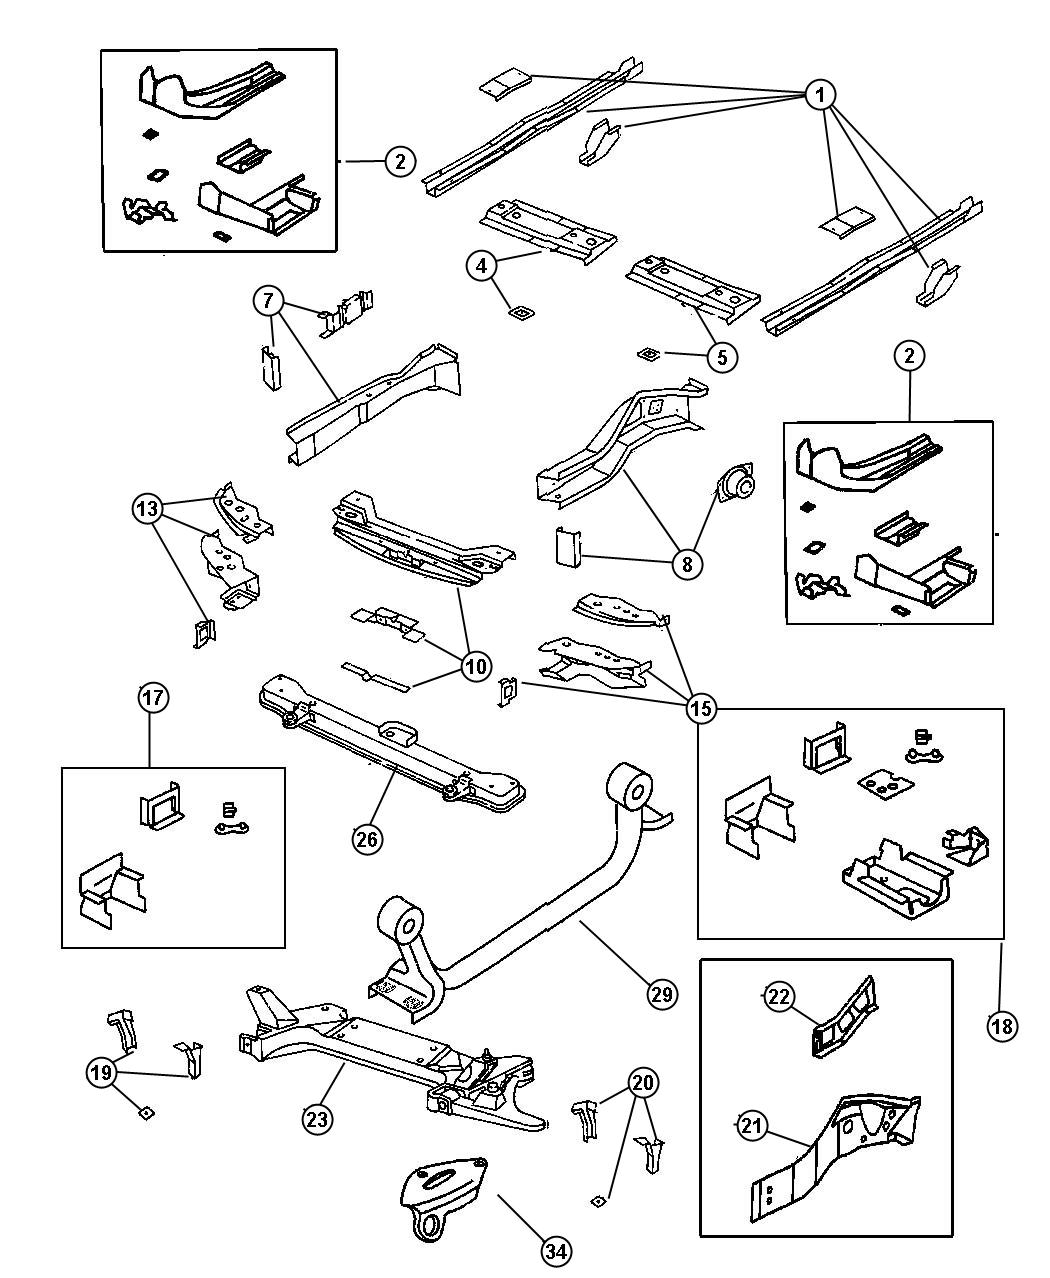 1999 Plymouth Breeze Front Suspension Diagram. Plymouth